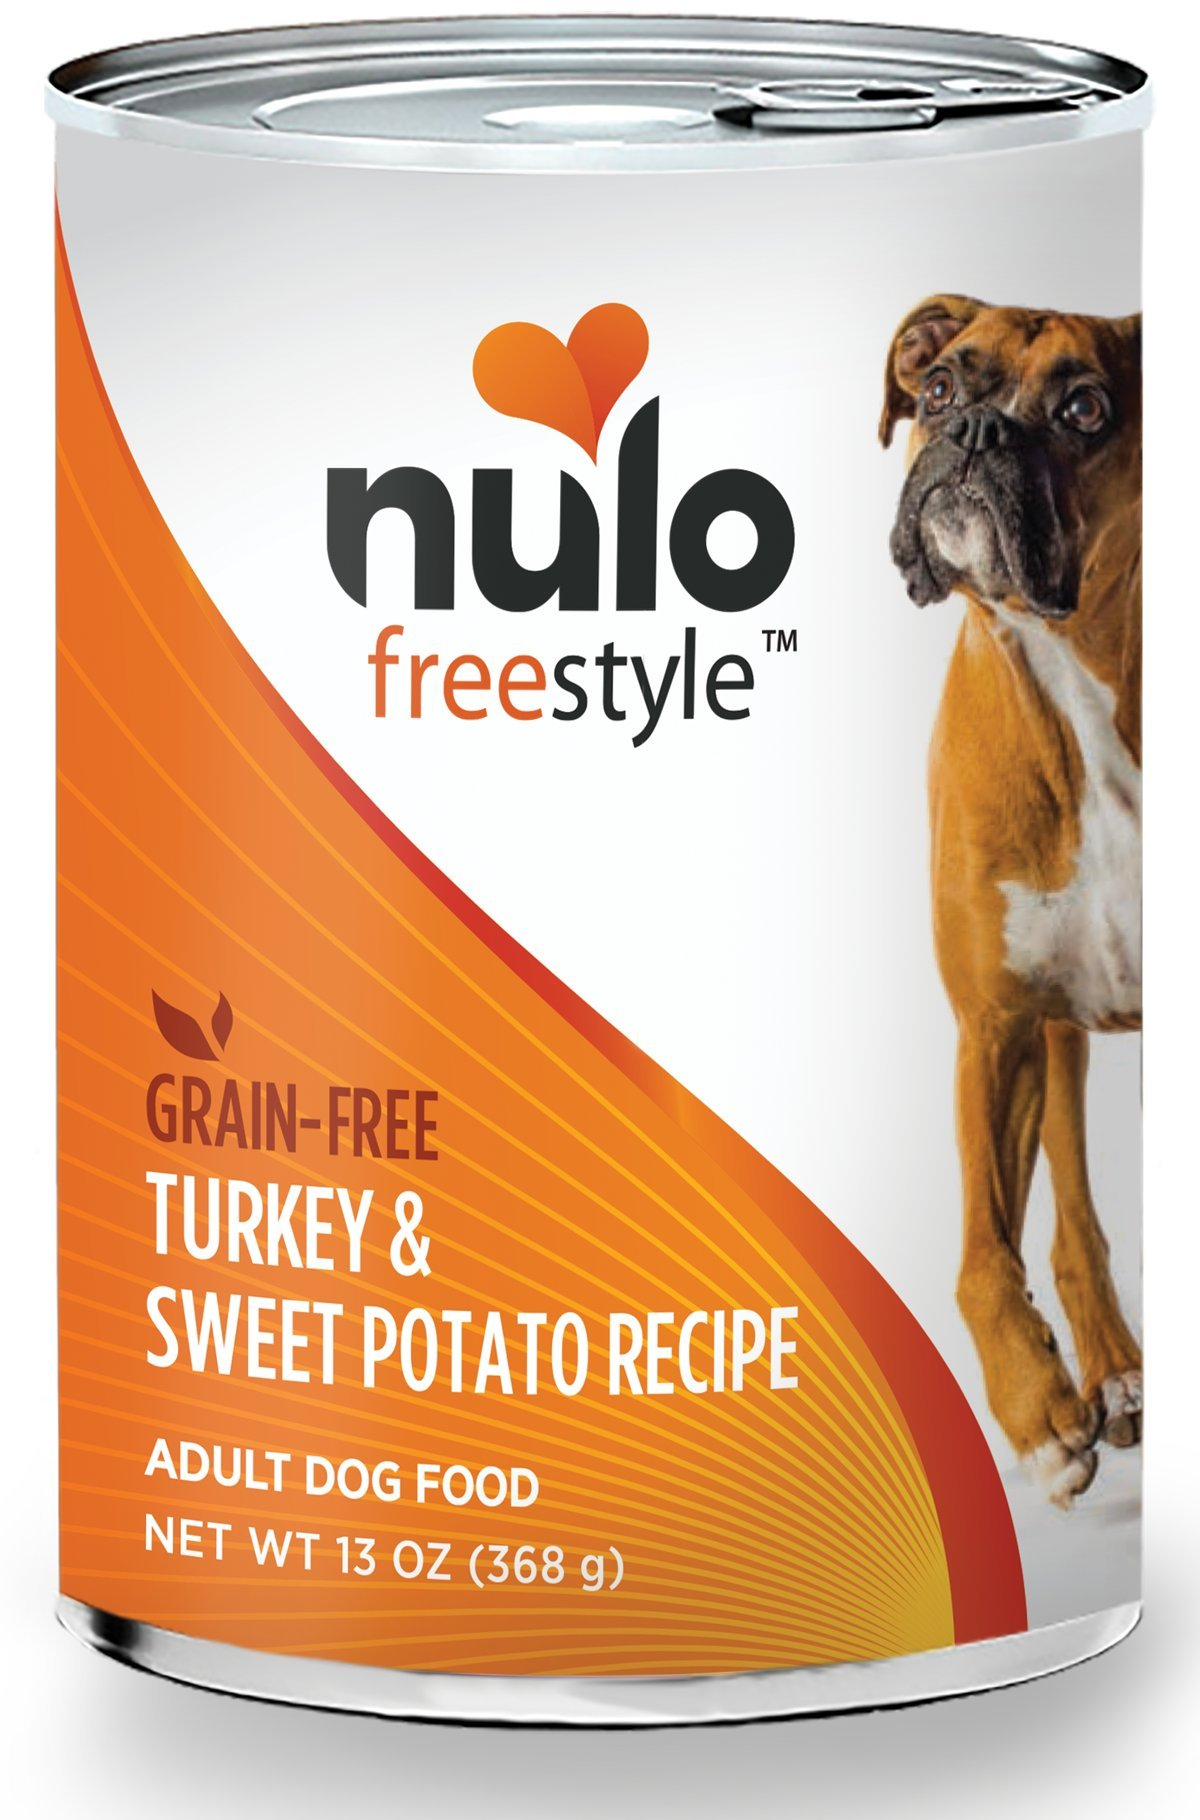 Nulo Grain Free Canned Wet Dog Food (13 oz, Turkey) - 12 Cans